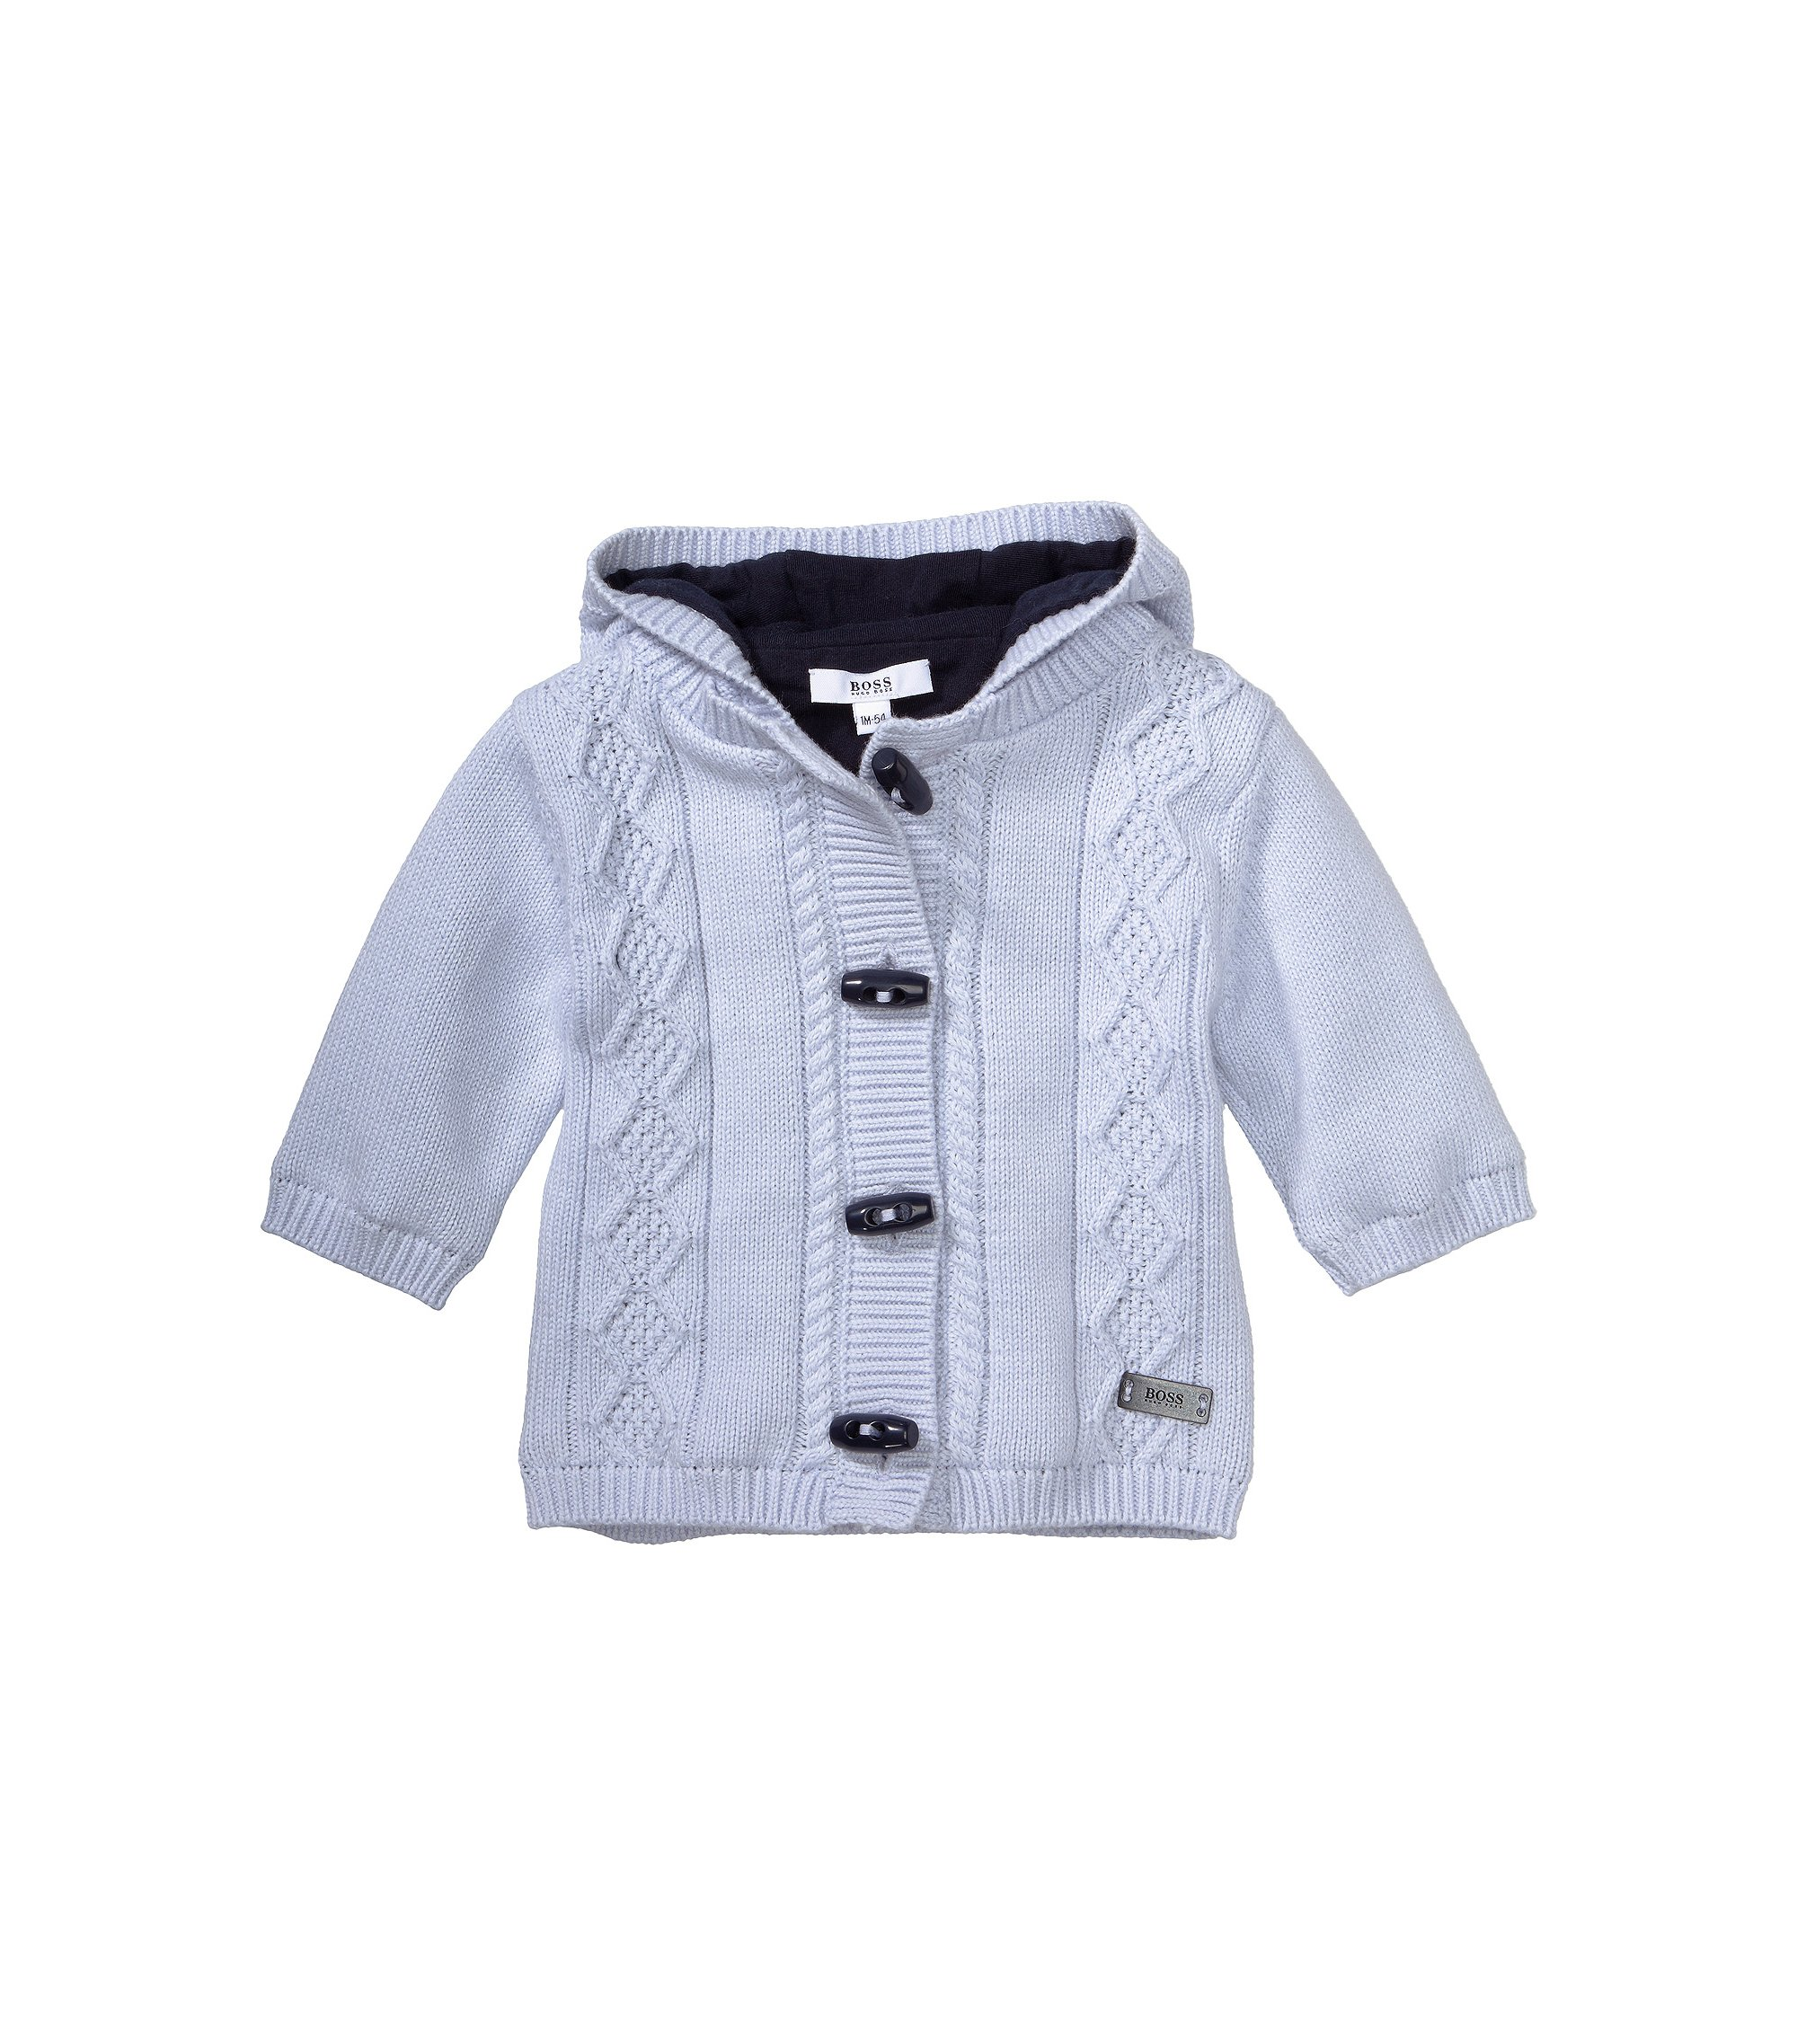 Kids-Strickjacke ´J95137` aus Baumwoll-Mix, Hellblau